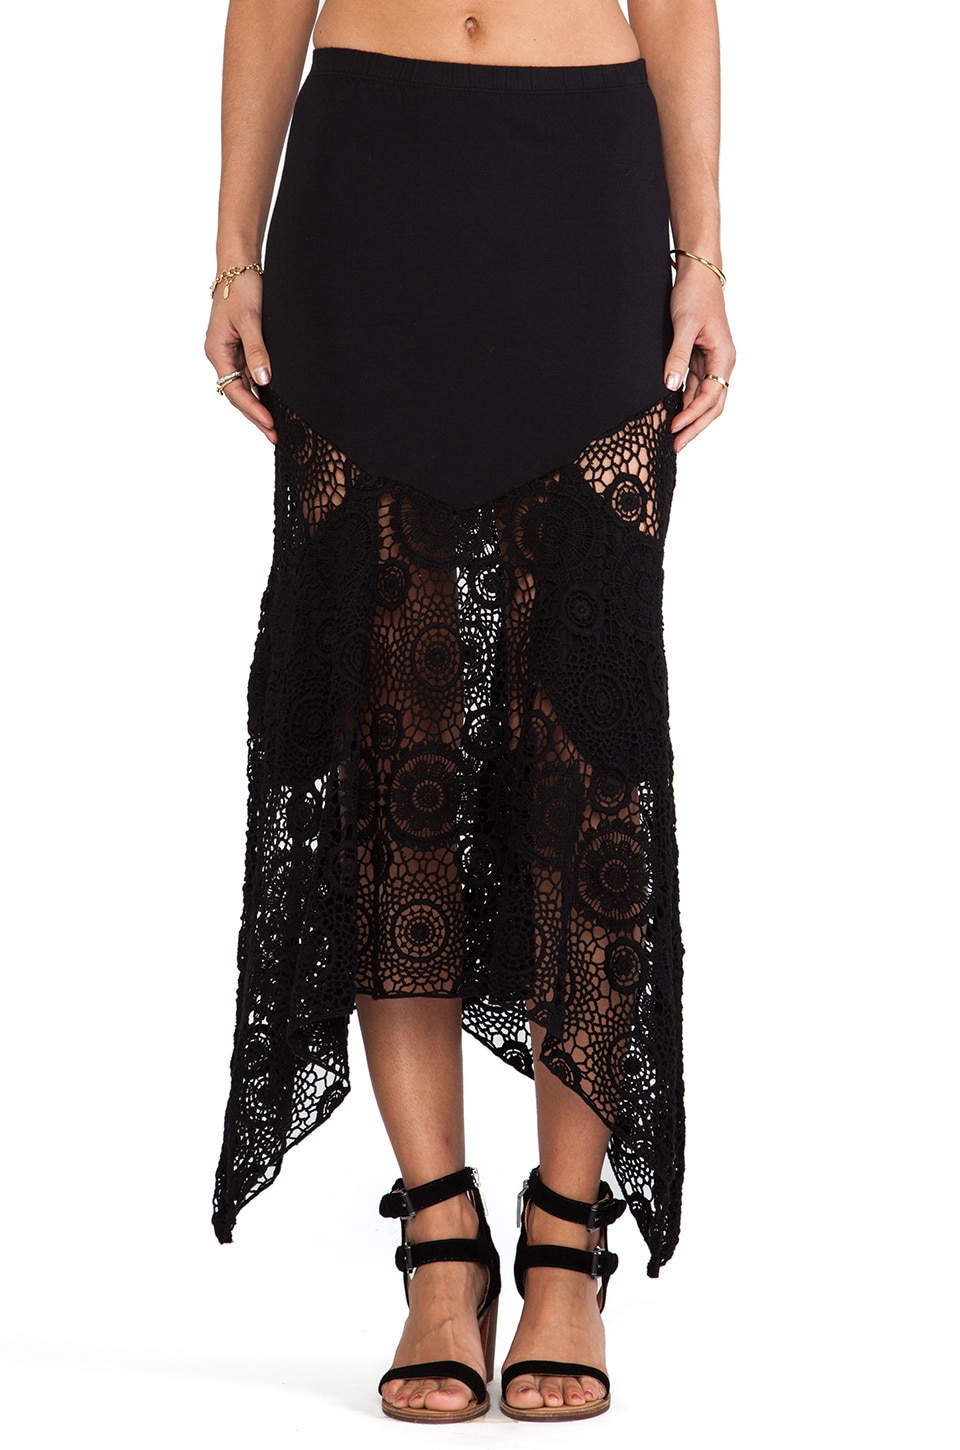 Nightcap Maude Crochet Skirt in Black